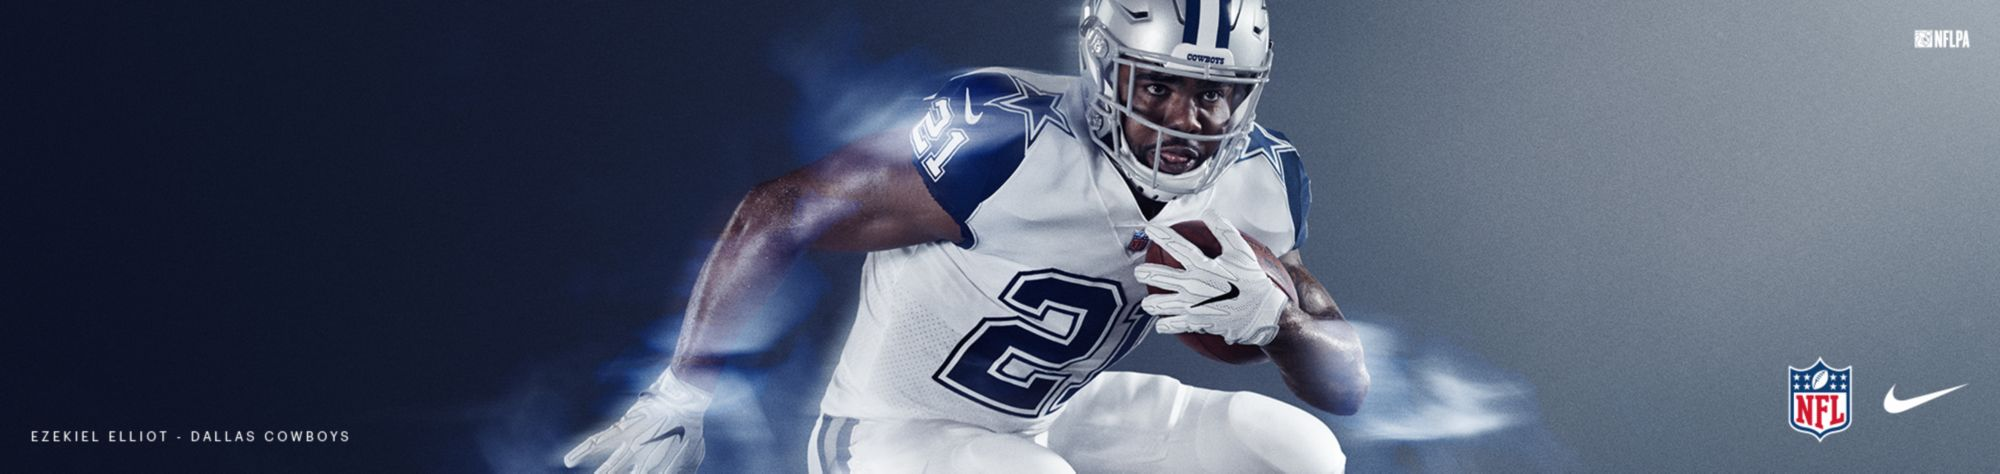 Color Rush Jerseys - Dallas Cowboys